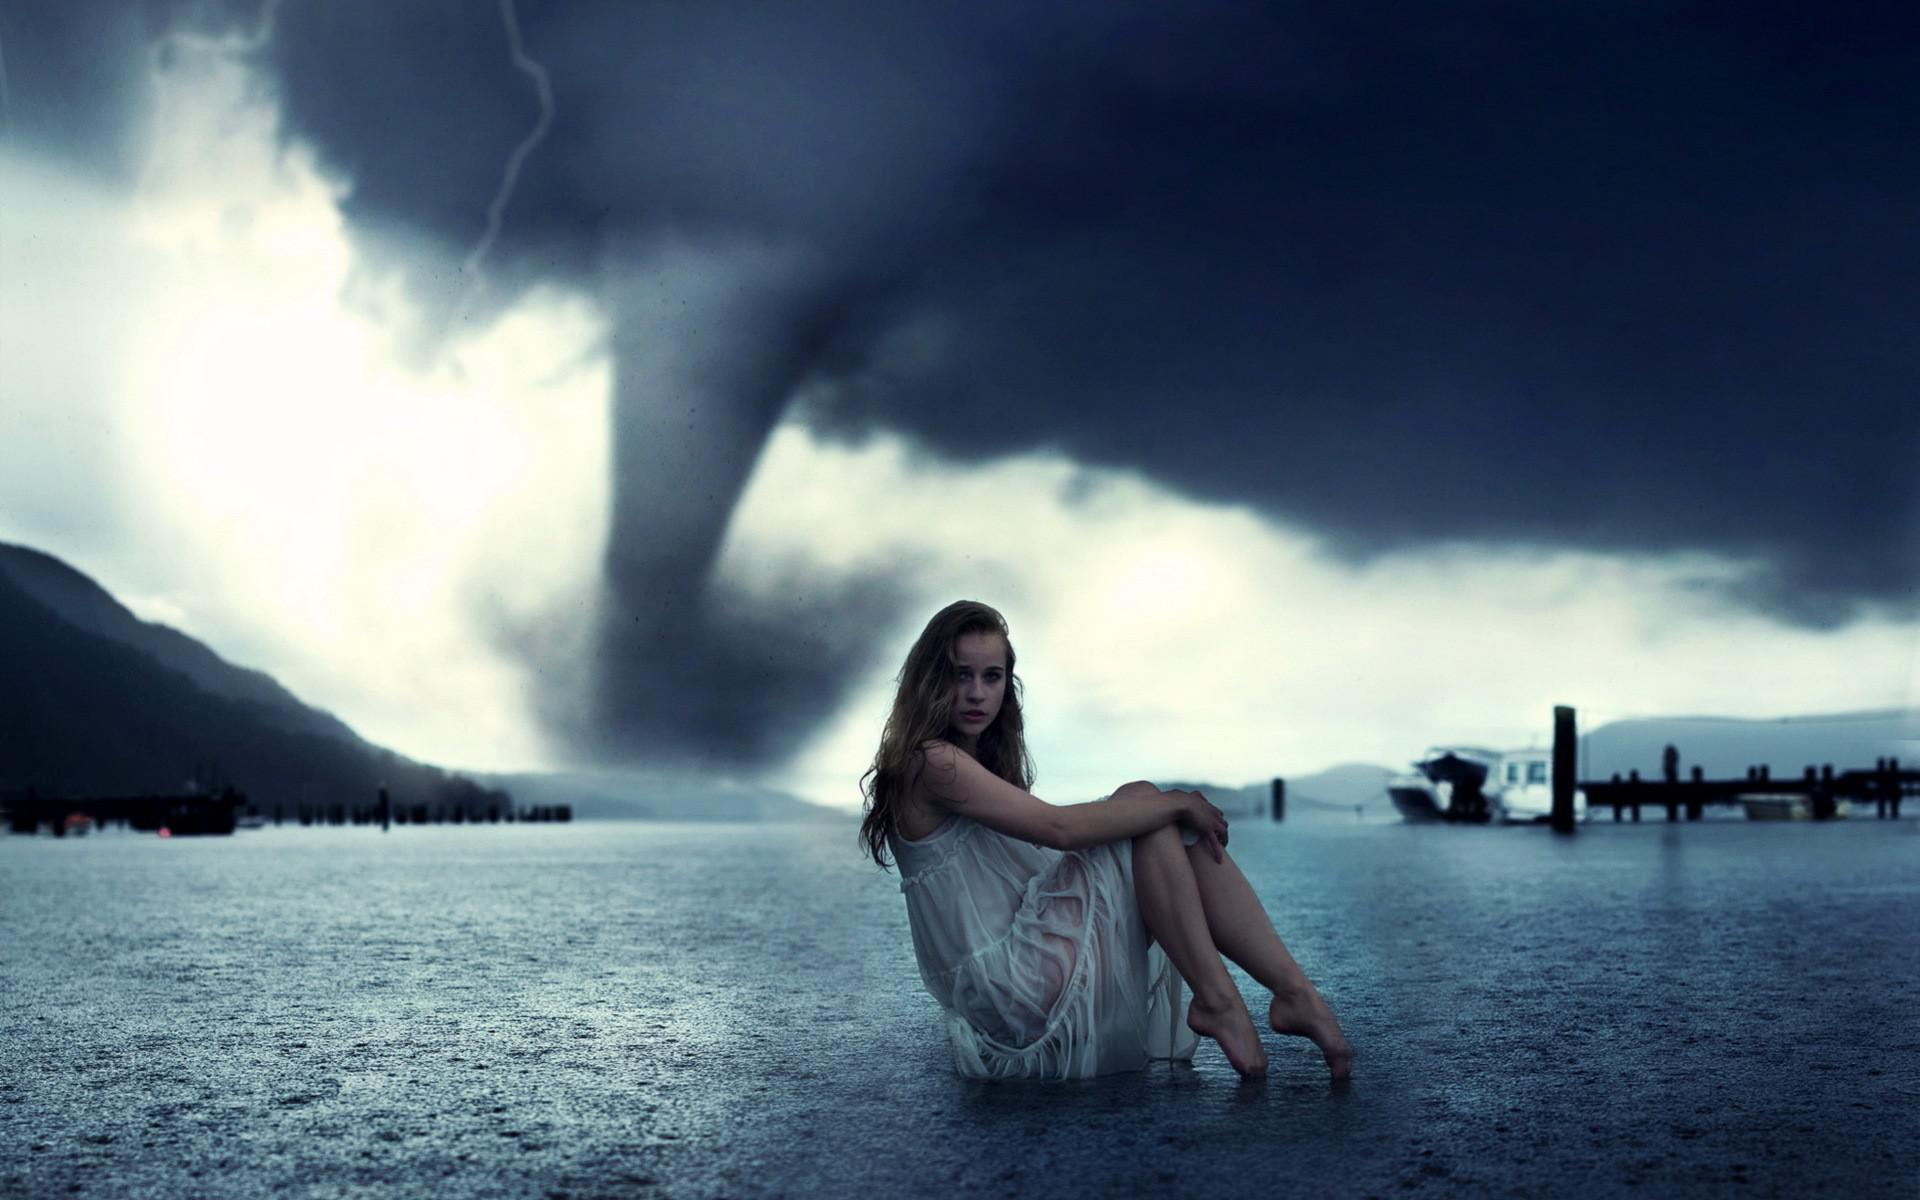 Different Twister HQ Wallpapers | World's Greatest Art Site